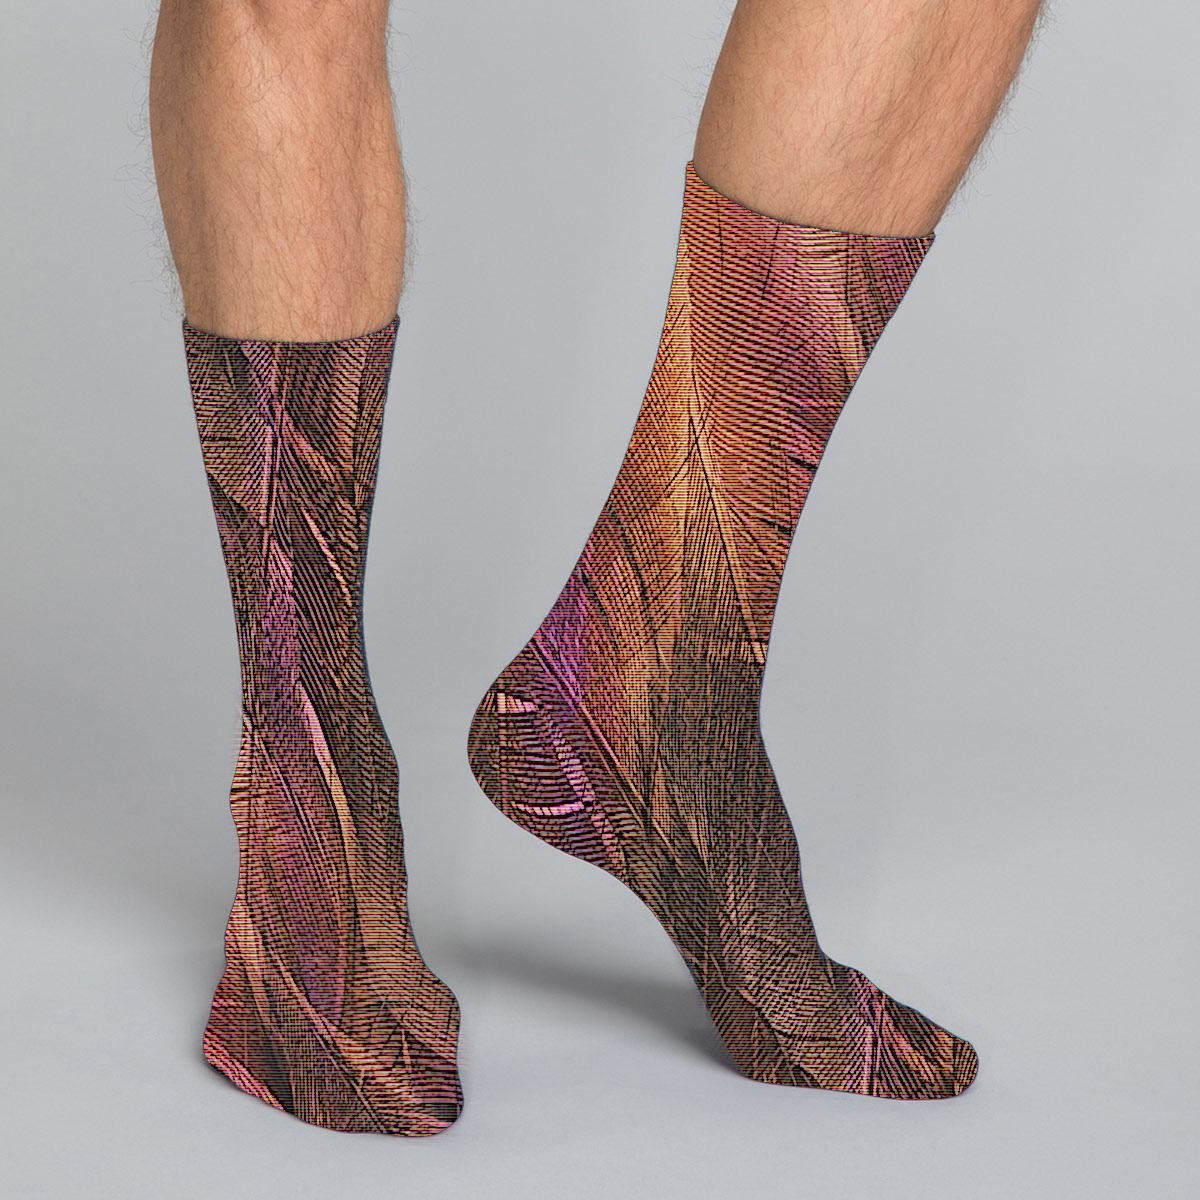 Women's, men's & youth's casual crew socks in unique colorful purple & brown design celebrating food, fashion, fitness, fun